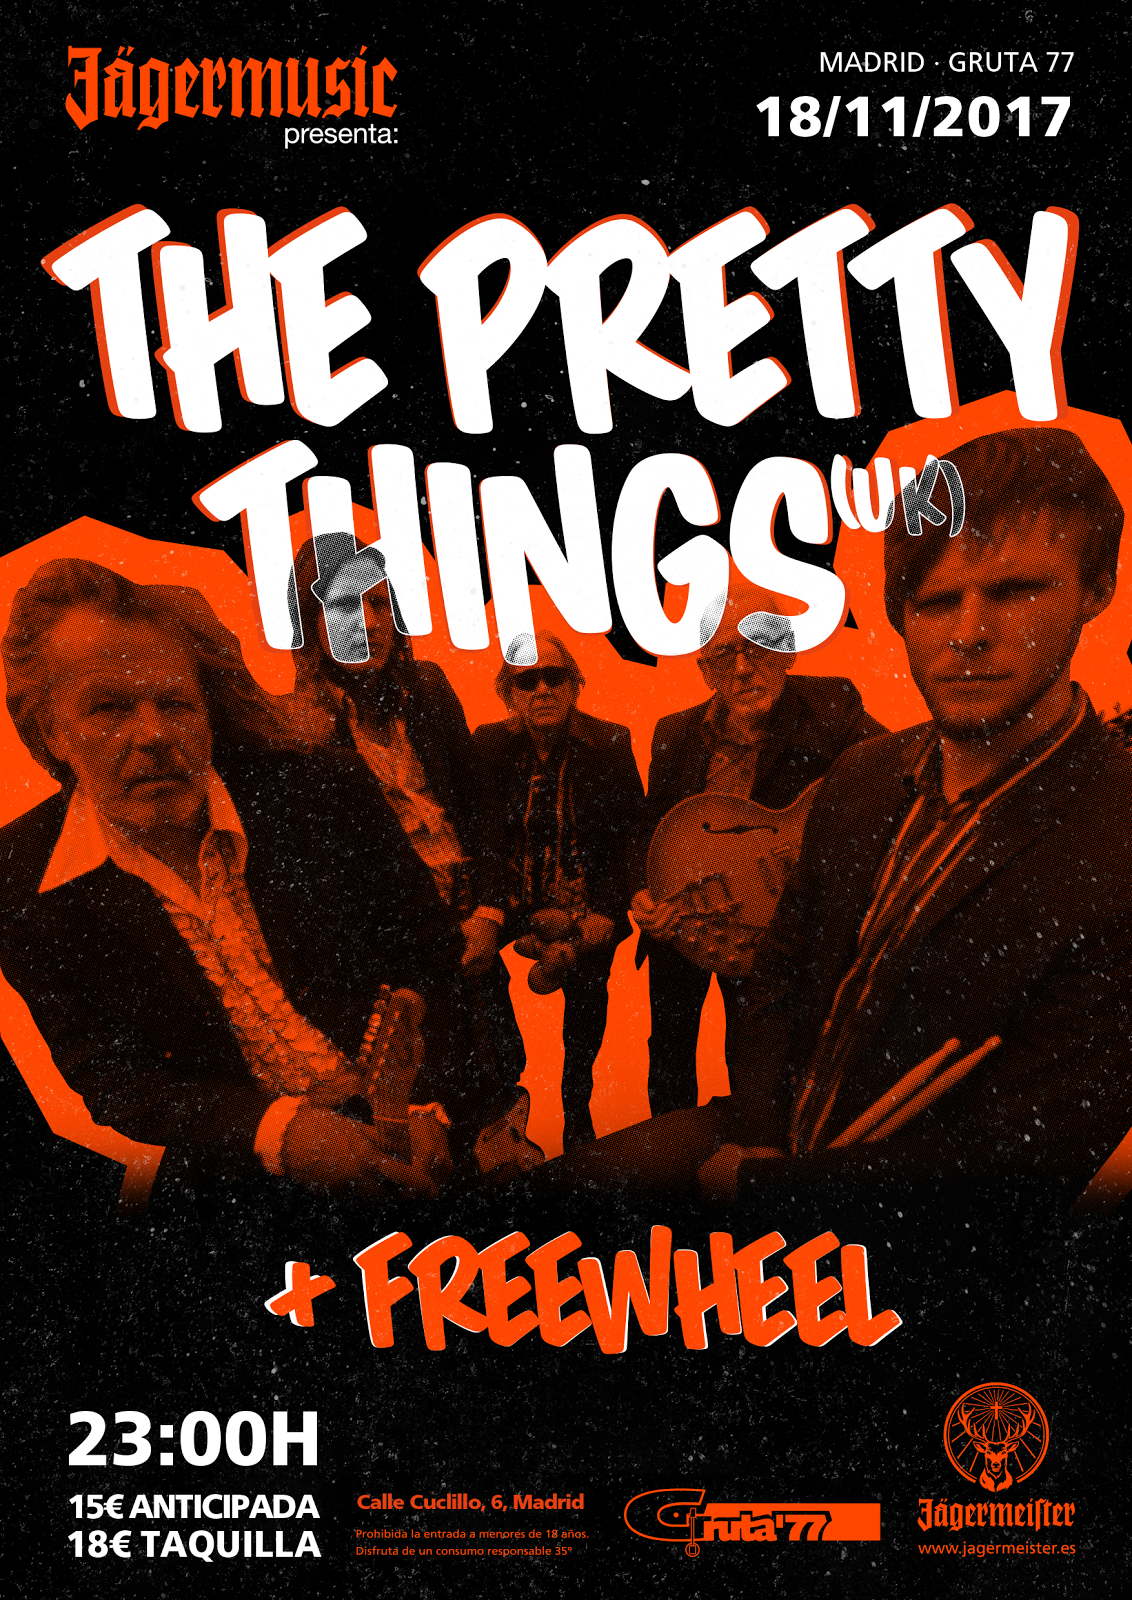 The Pretty Things - 18/11/2017 - Gruta'77